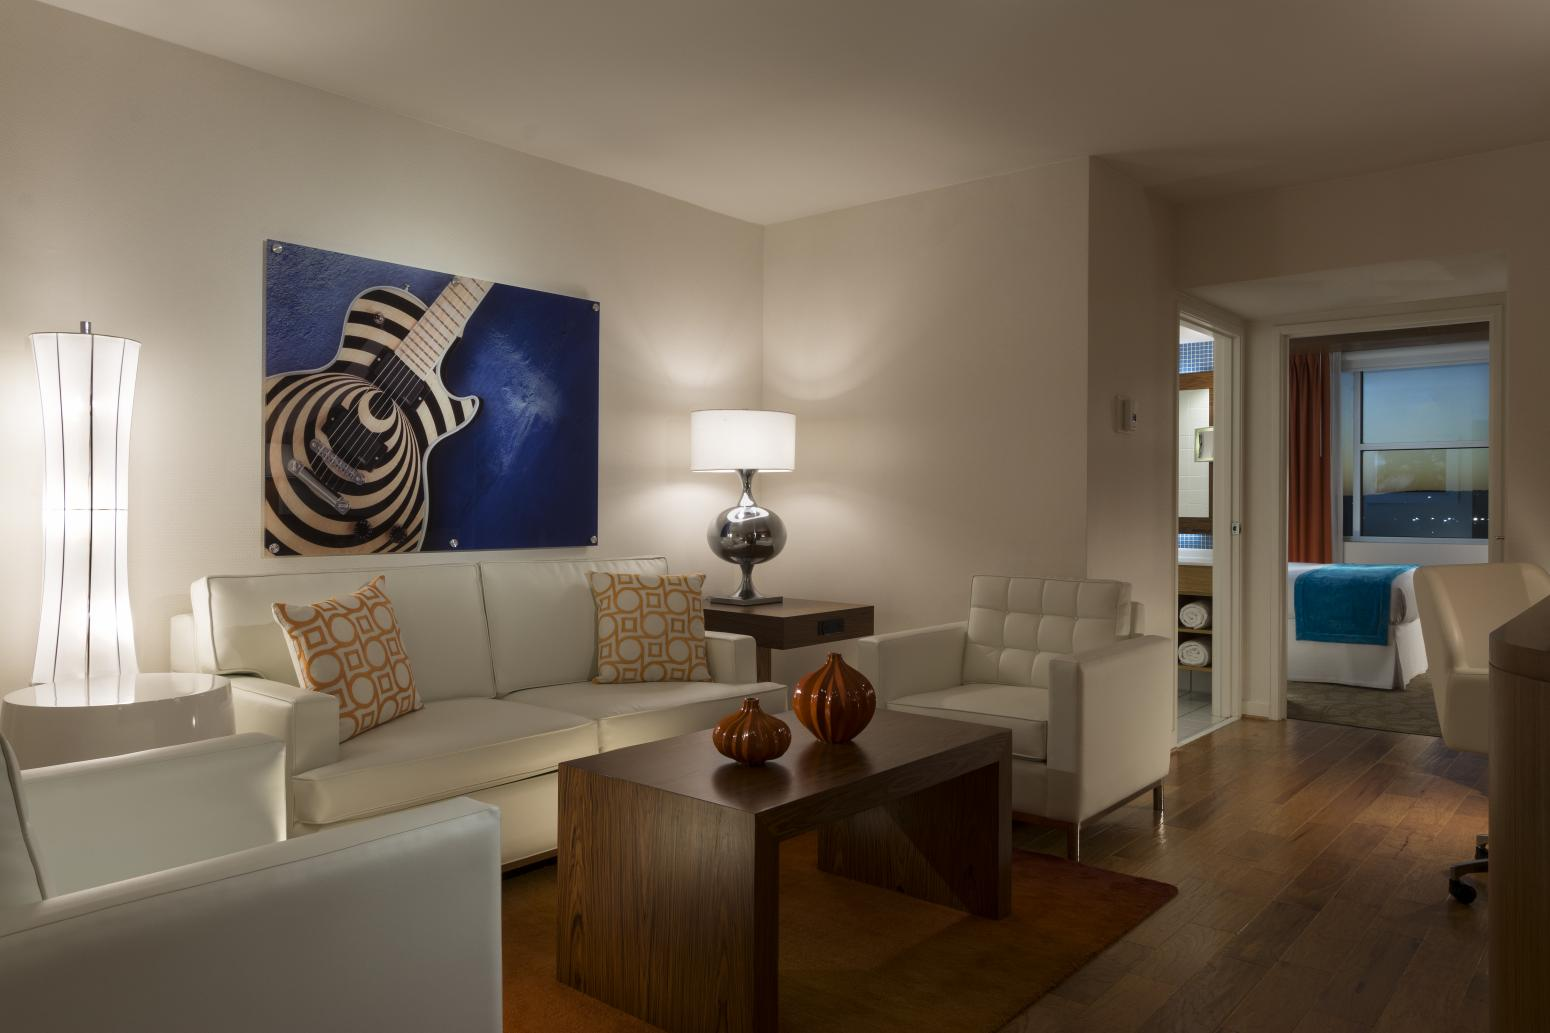 dallas hospitality design